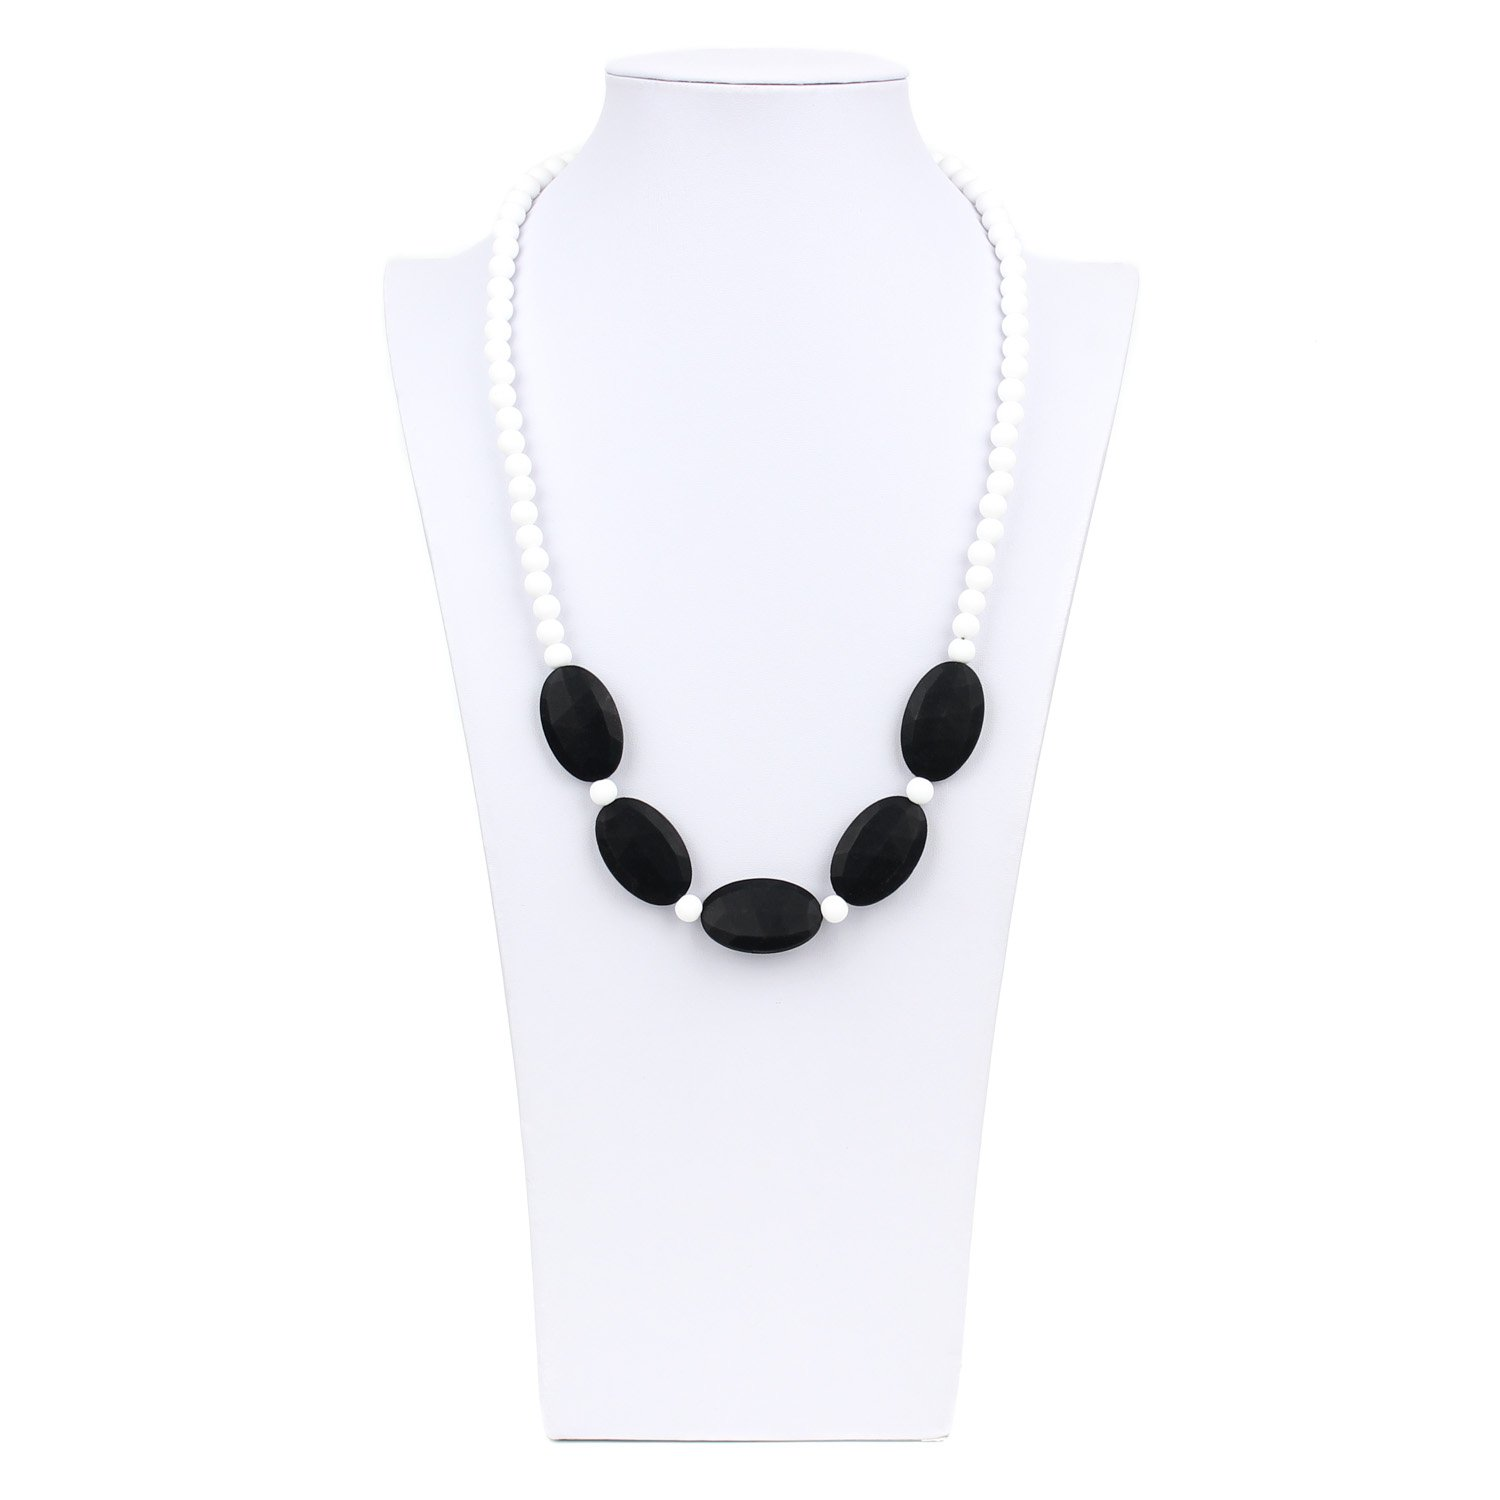 Nixi Sasso Teething Necklace, White/Black by Bumkins   B00EZM7A5C